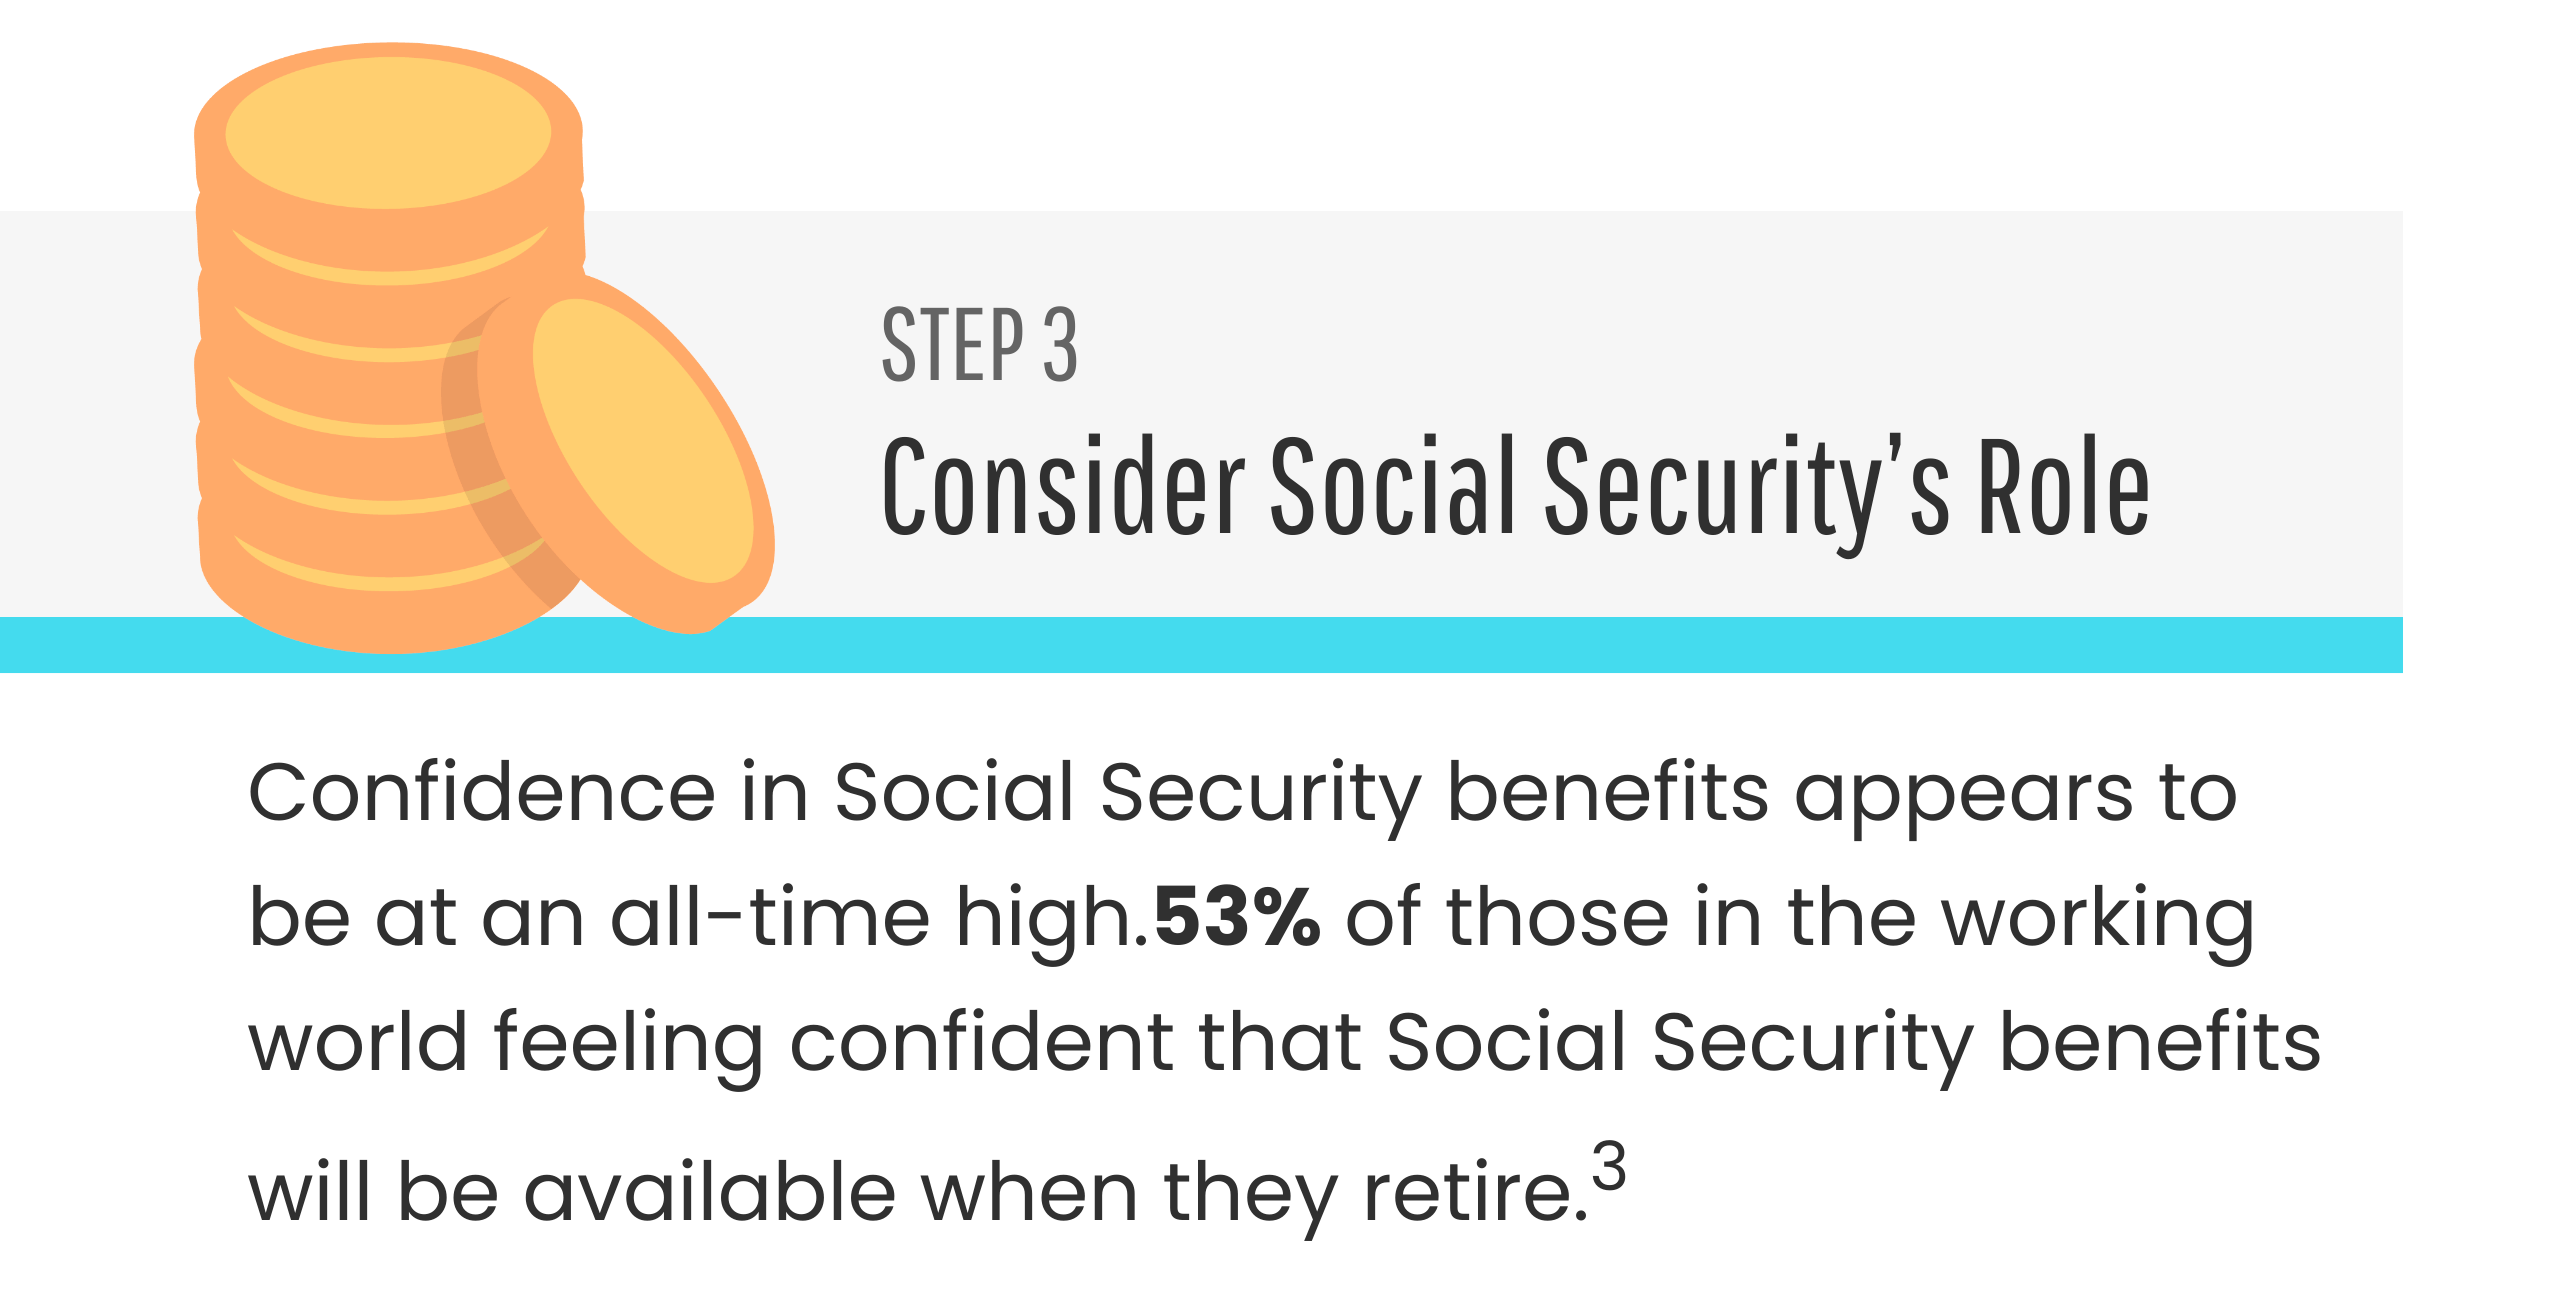 Step 3: Consider Social Security's Role. Confidence in Social Security benefits appears to be at an all-time high. 53% of those in the working world feeling confident that Social Security benefits will be available when they retire.